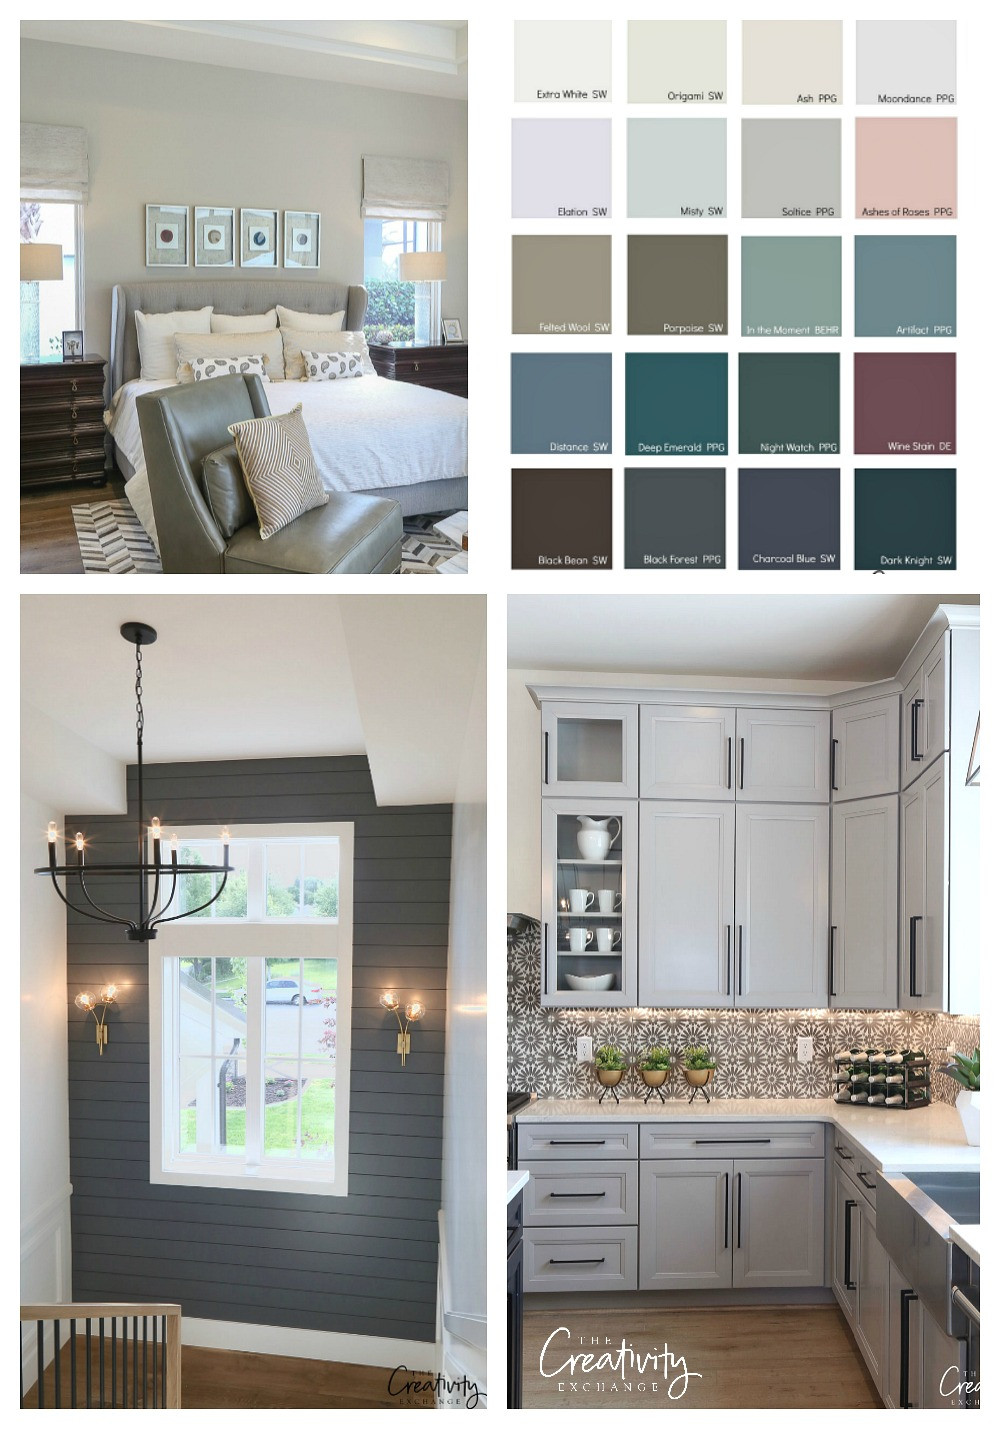 Best ideas about Paint Colors 2019 . Save or Pin 2019 Paint Color Trends and Forecasts Now.